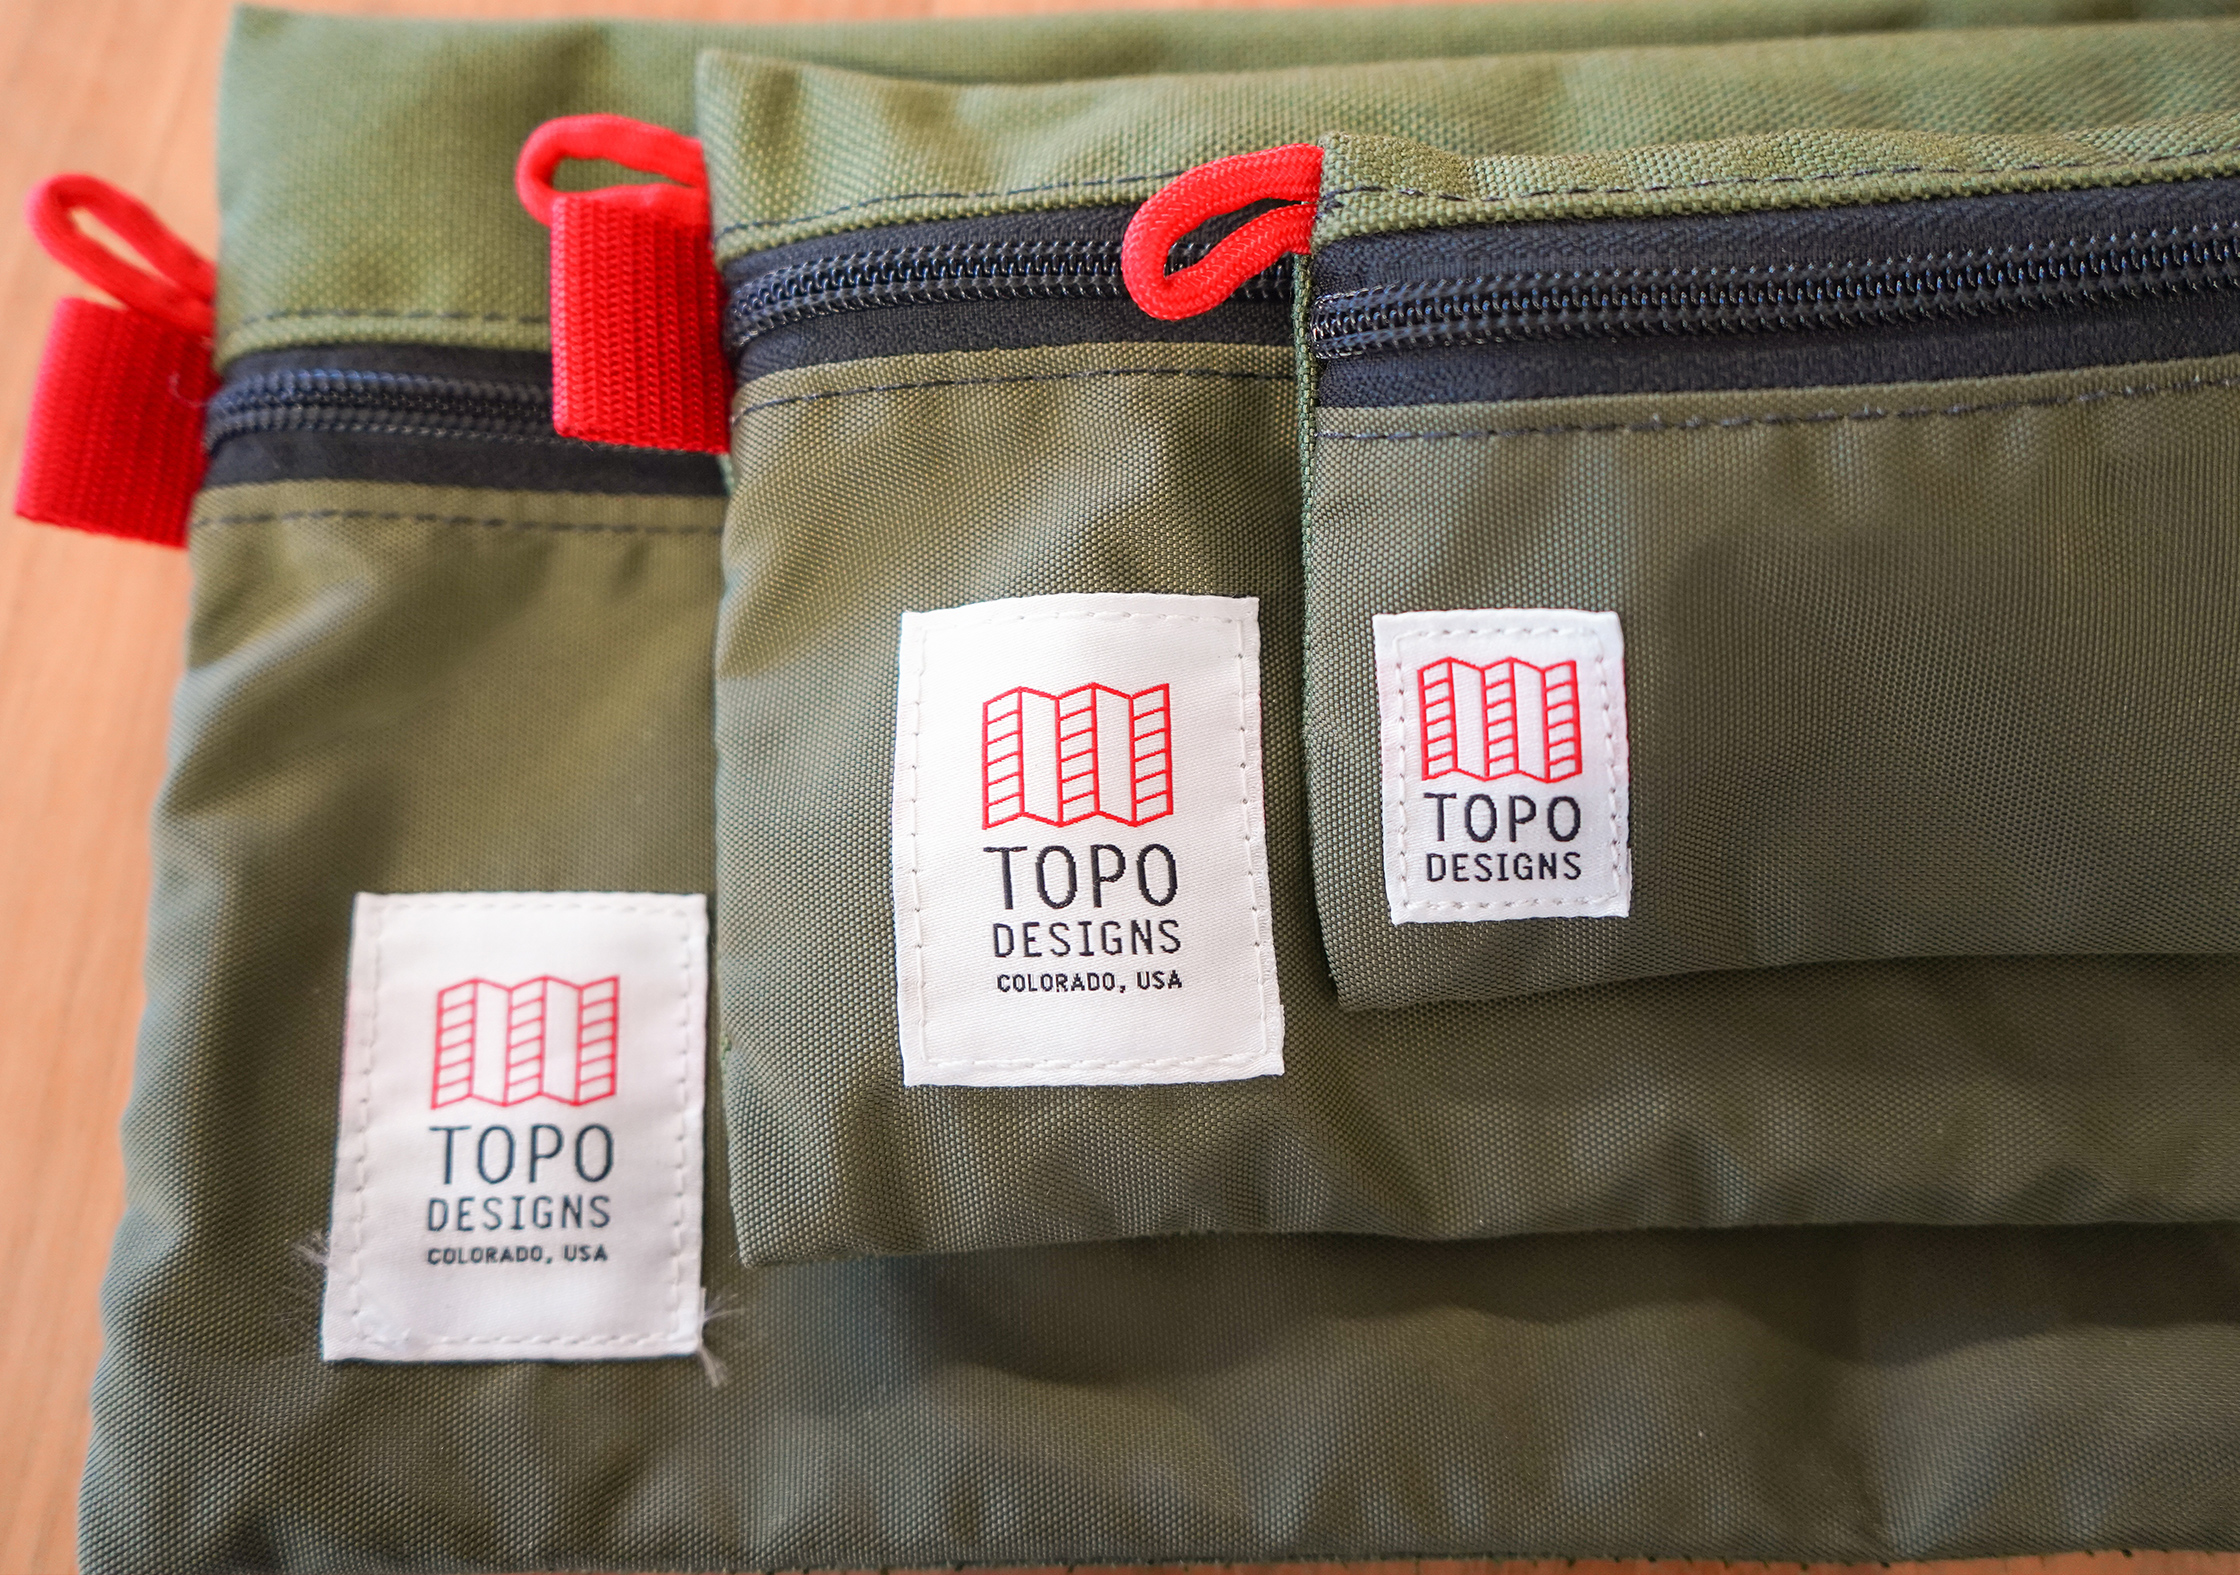 Topo Accessory Bags Stacked Logos